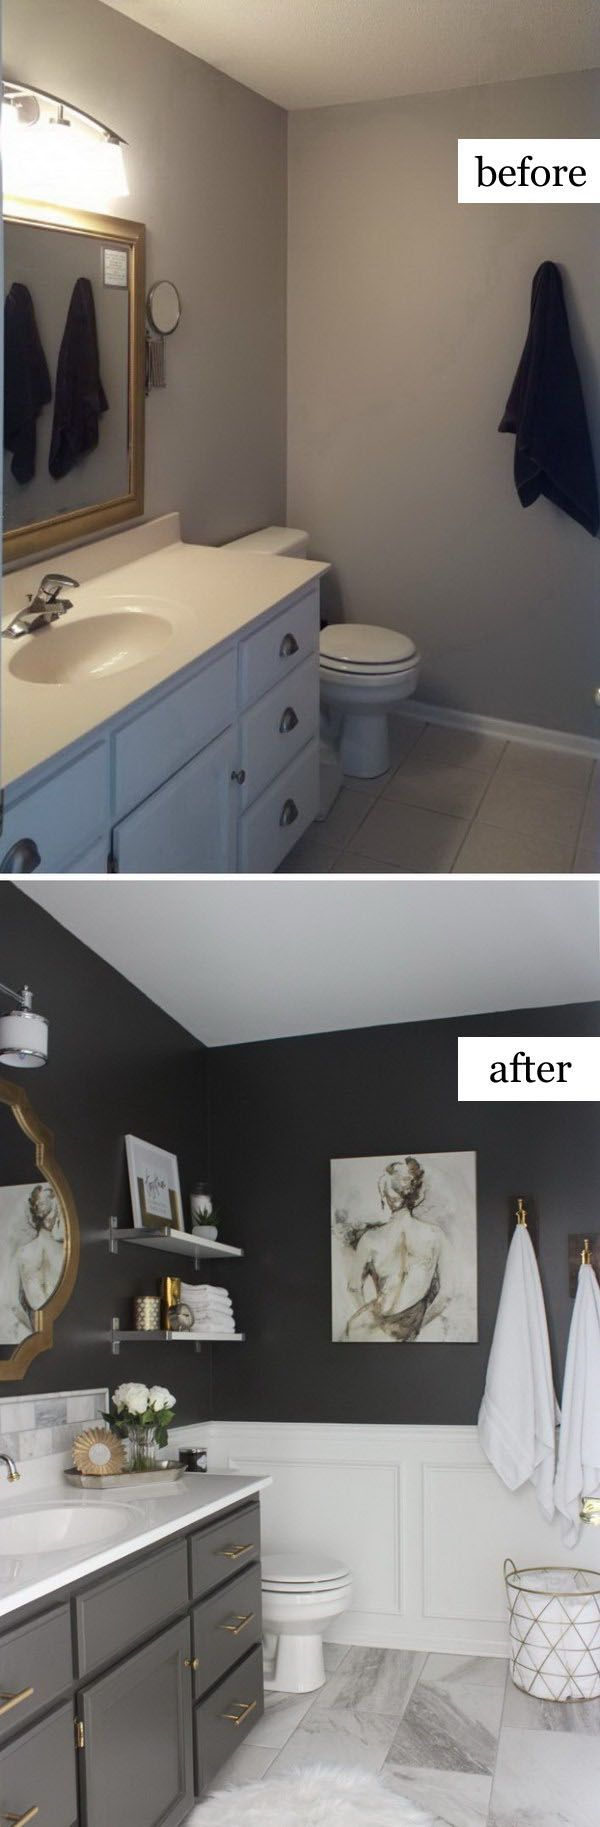 Diy Small Bathroom Remodel Ideas best 20+ small bathroom remodeling ideas on pinterest | half